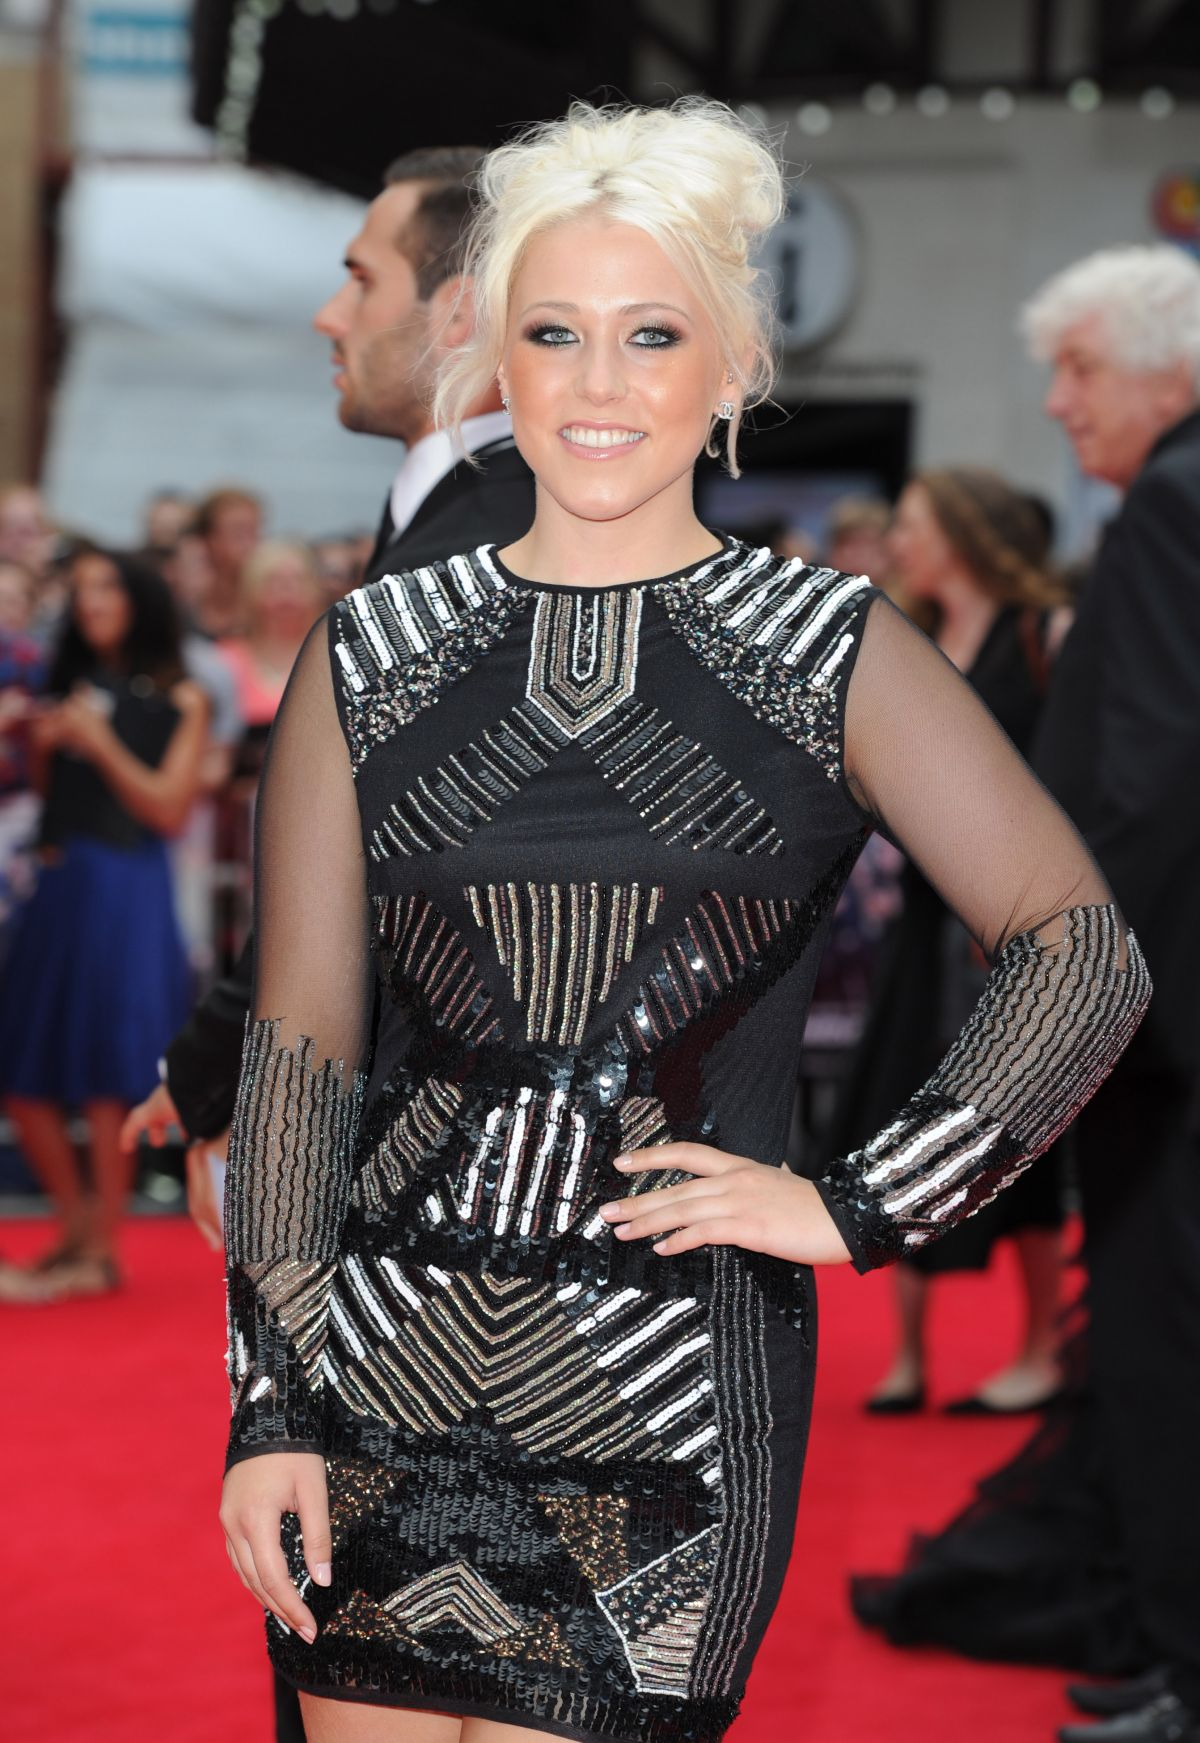 AMELIA LILY at The Expendables 3 Premiere in London